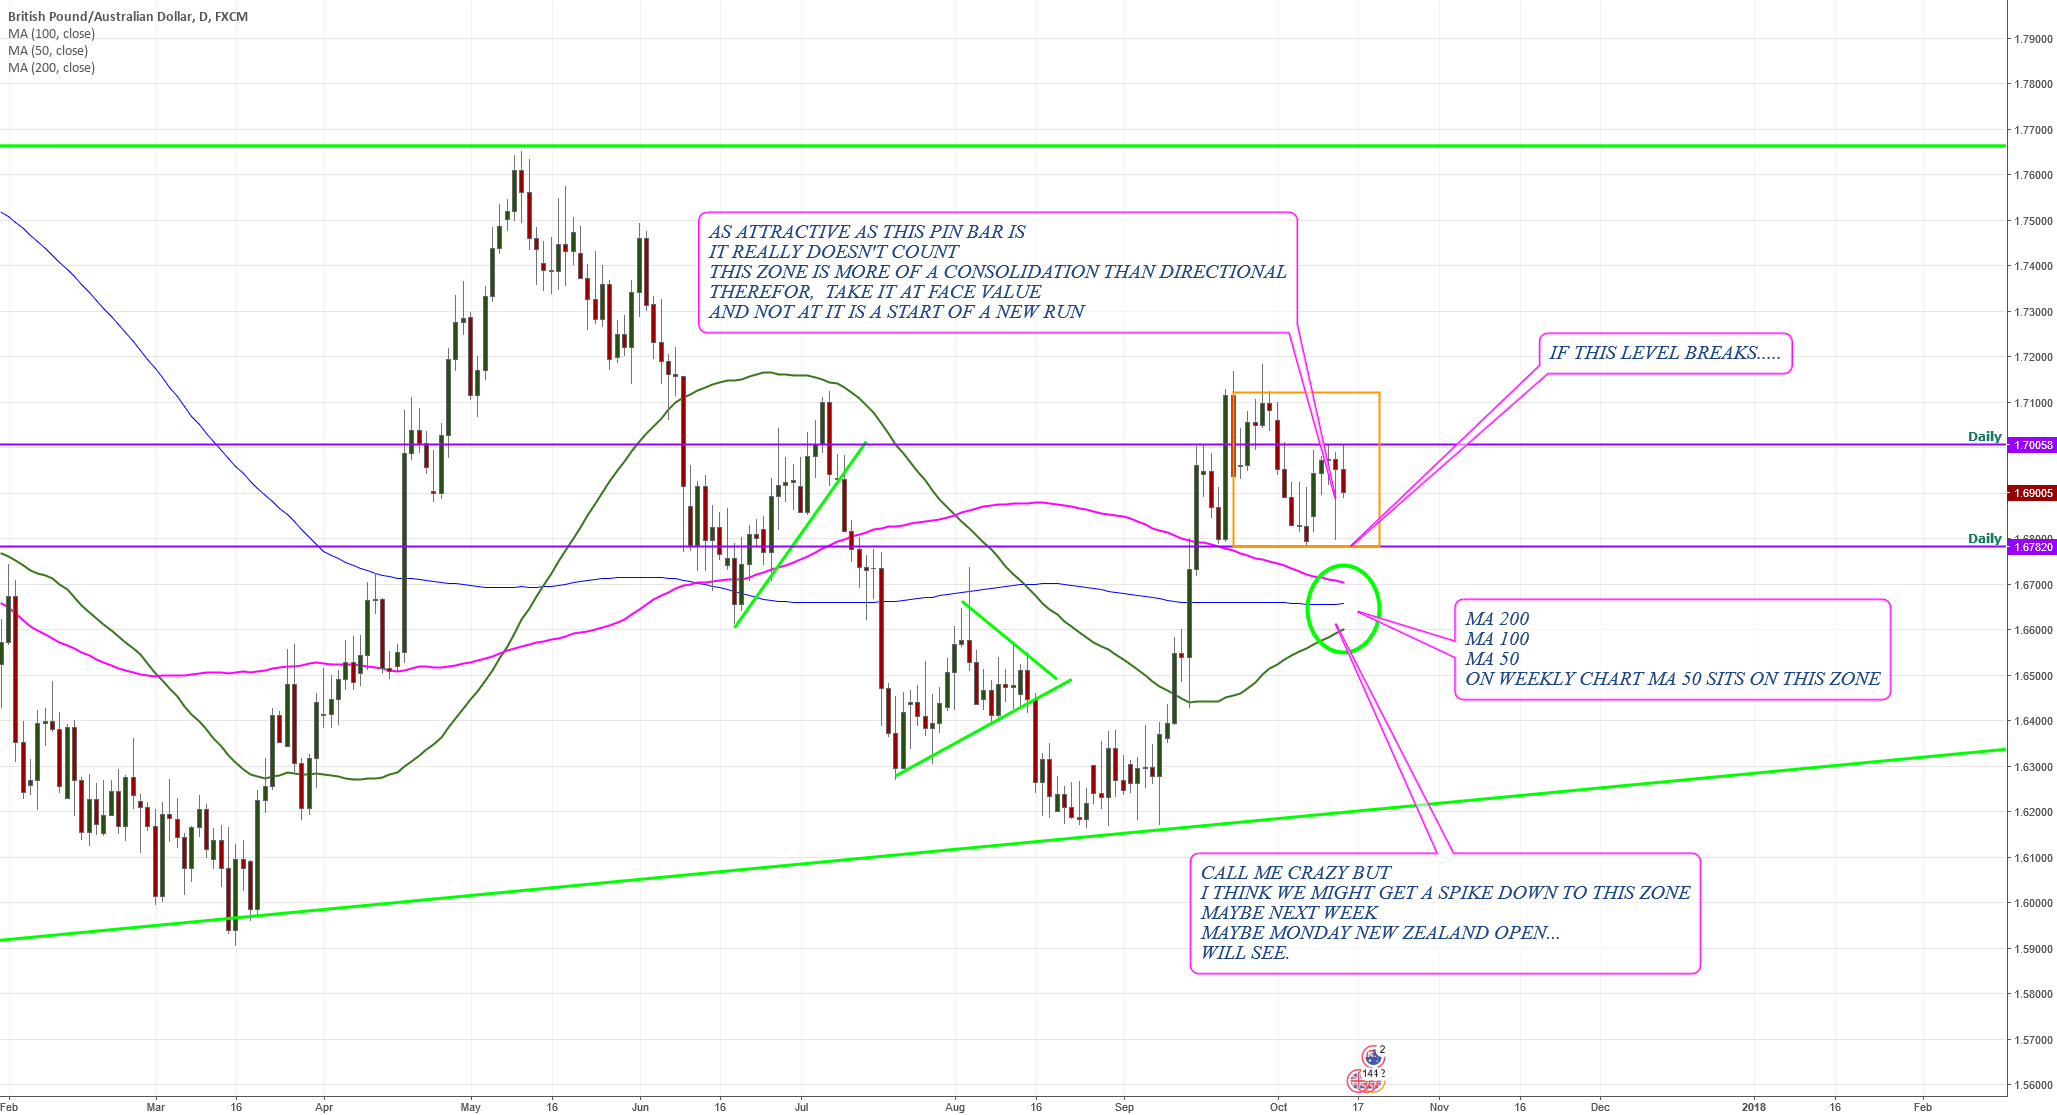 GBP/AUD 2nd look